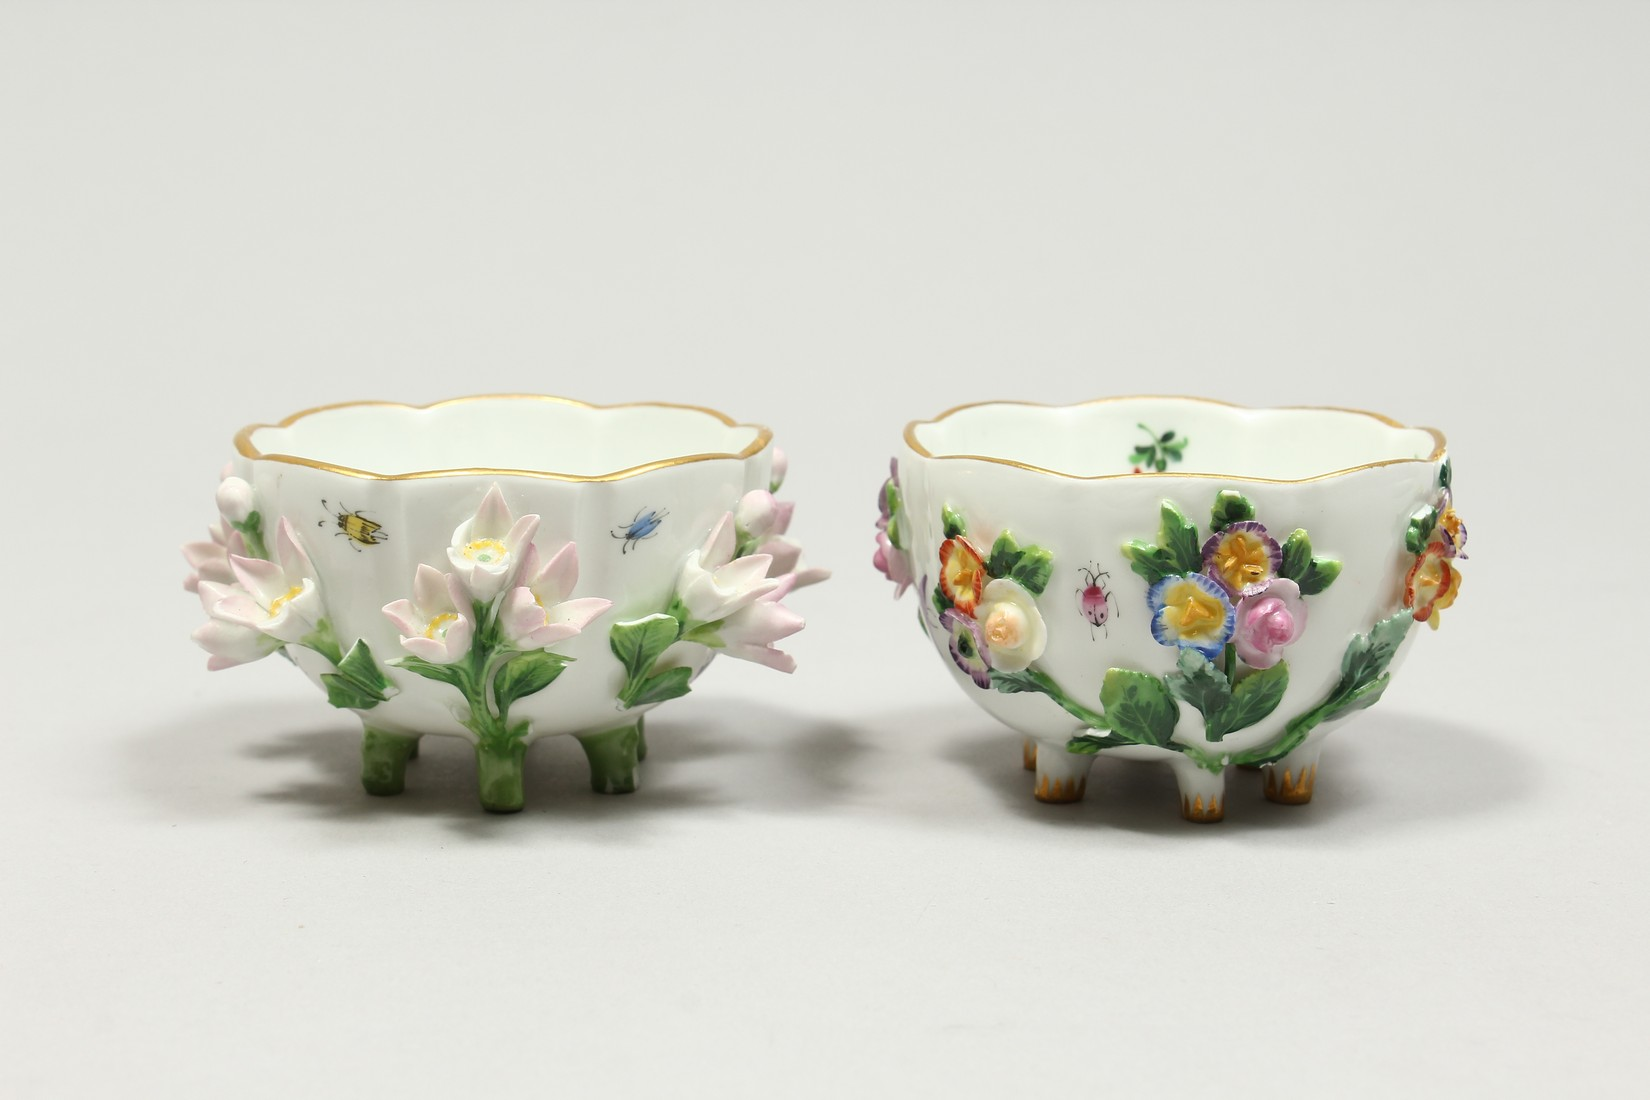 TWO MEISSEN PORCELAIN CUPS AND SAUCERS AND A SAUCER, encrusted with flowers and painted with - Image 3 of 16